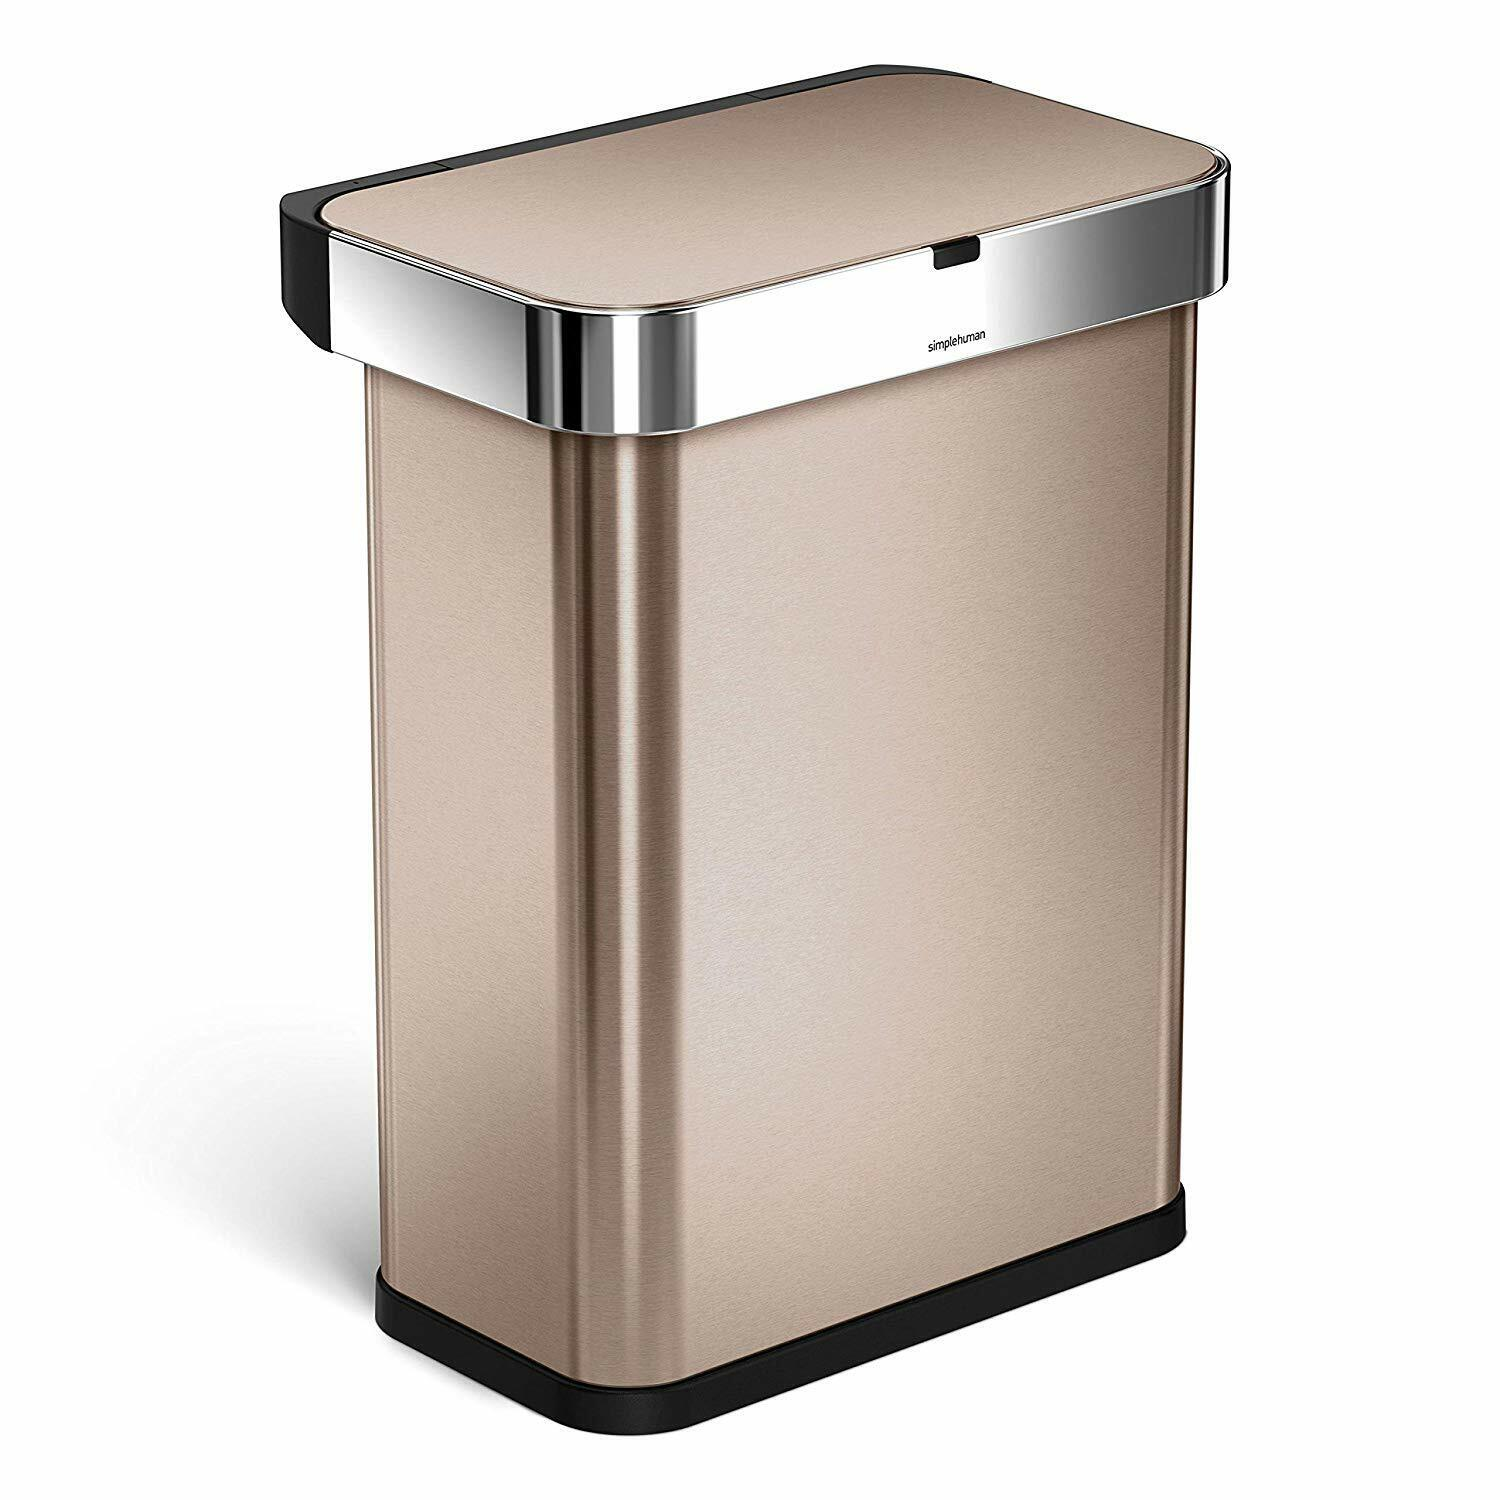 58 Liter Gallon Stainless Steel Sensor Trash Can with Voice